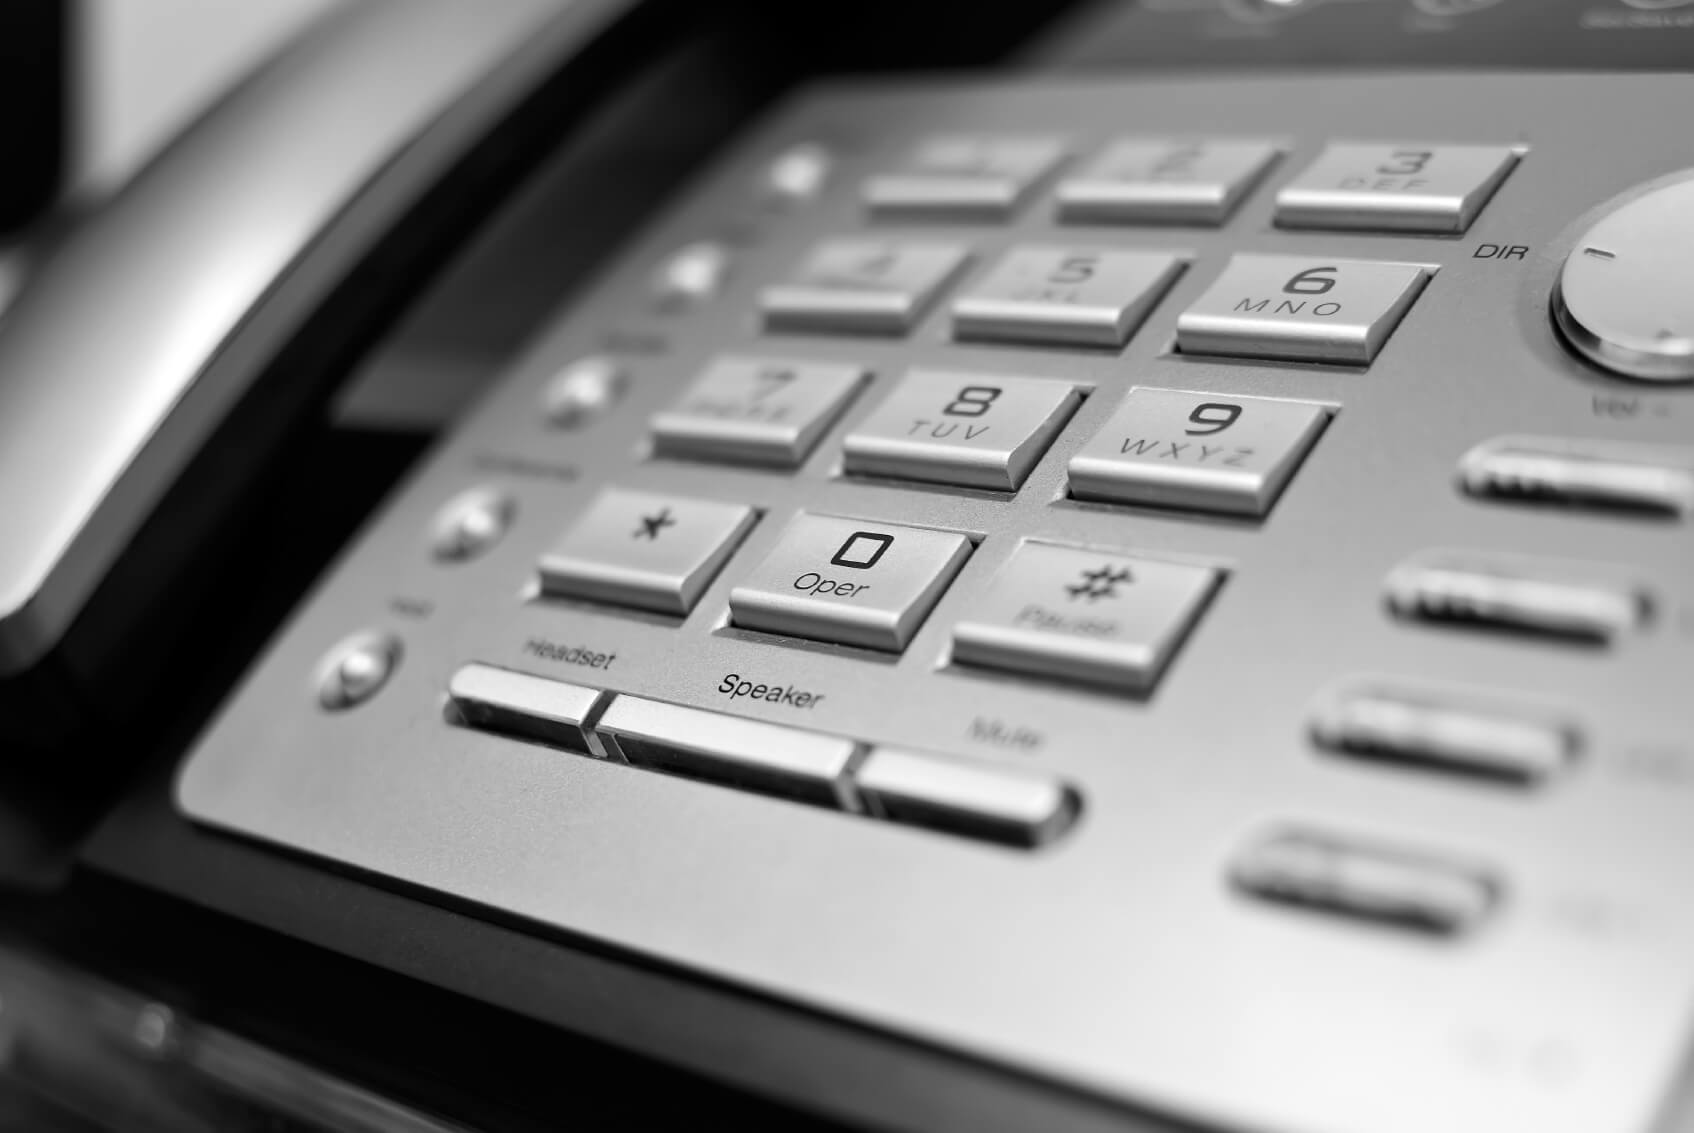 Close up of a business phone